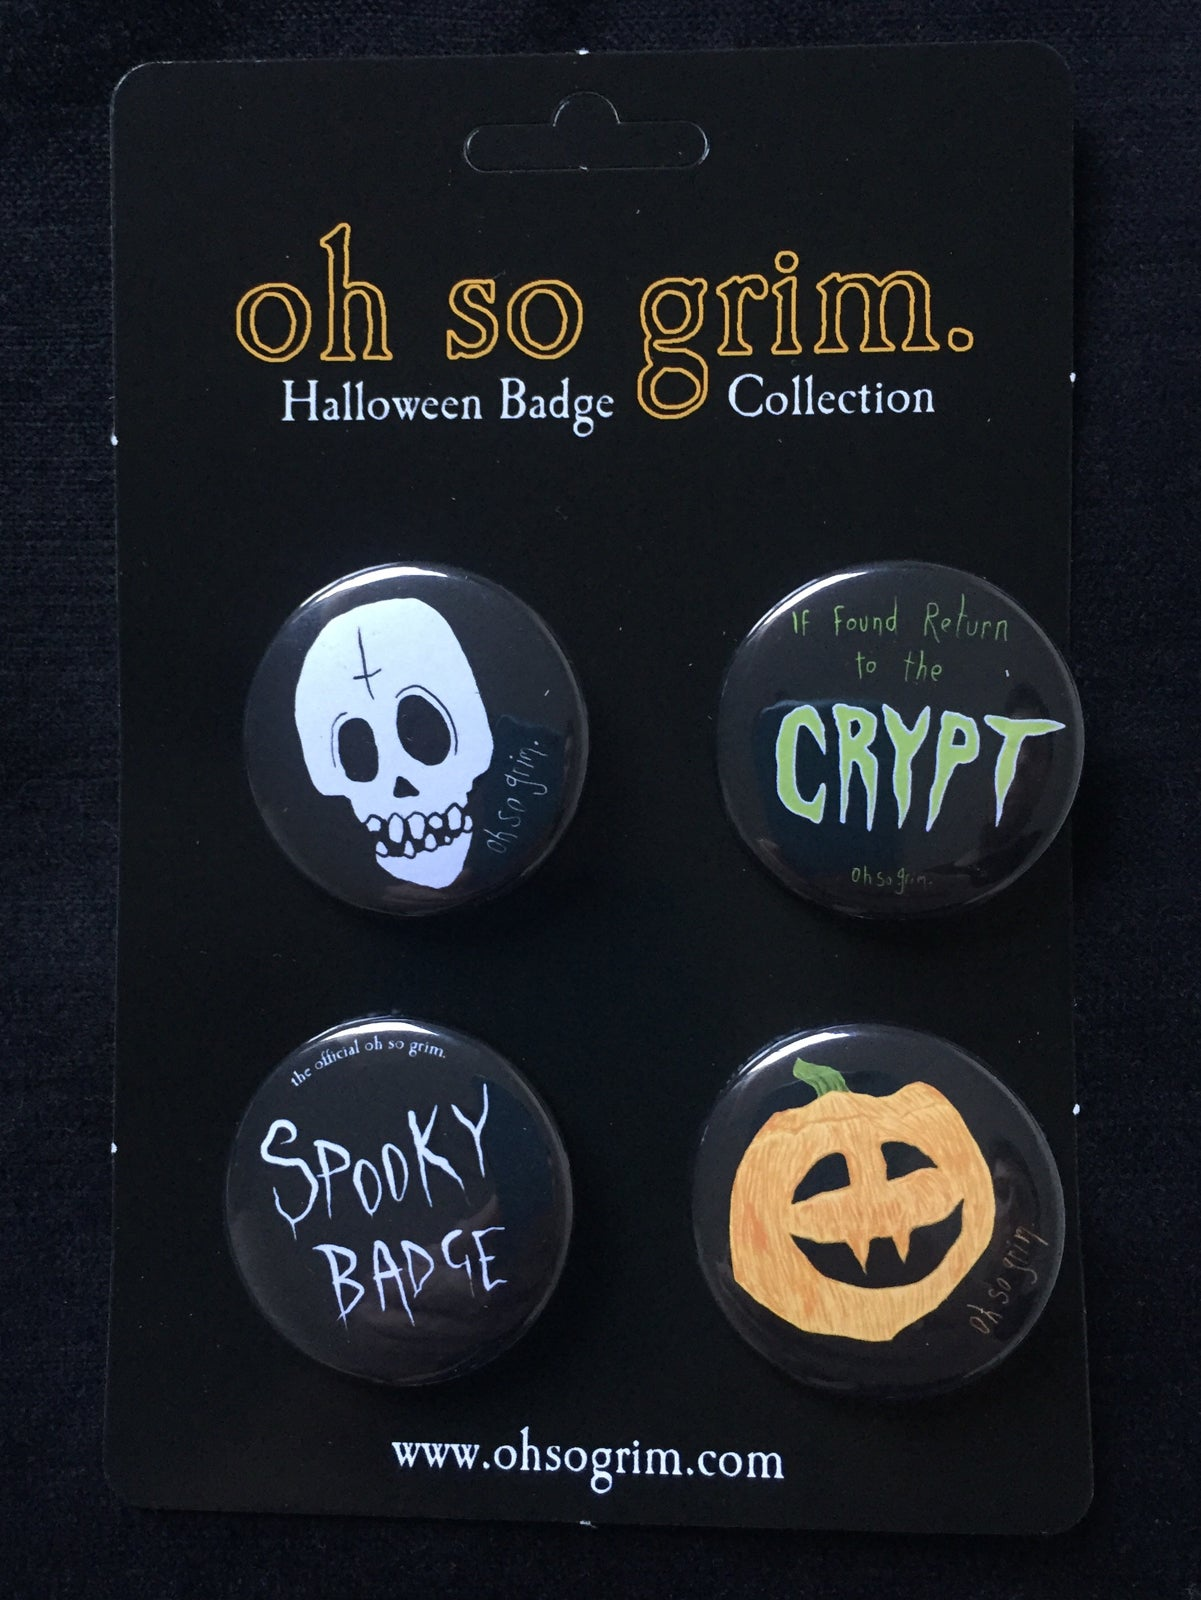 Image of Halloween badge collection